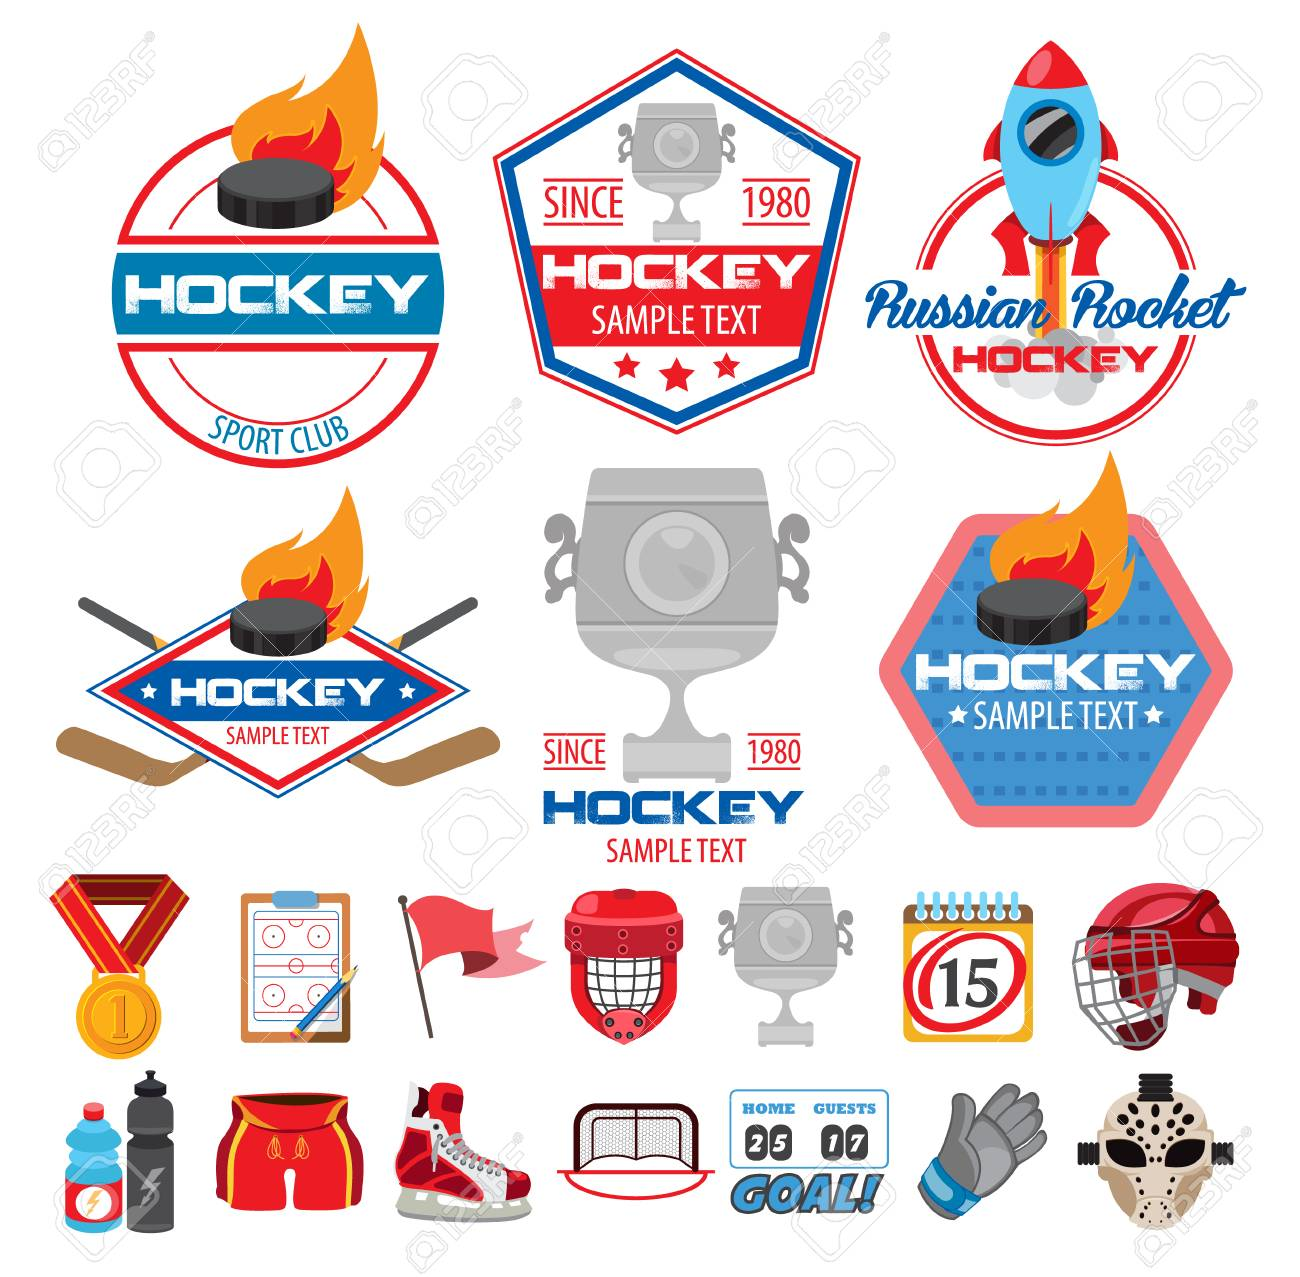 Hockey Logos Ice Hockey Logos Icons Labels Badges And Design Elements